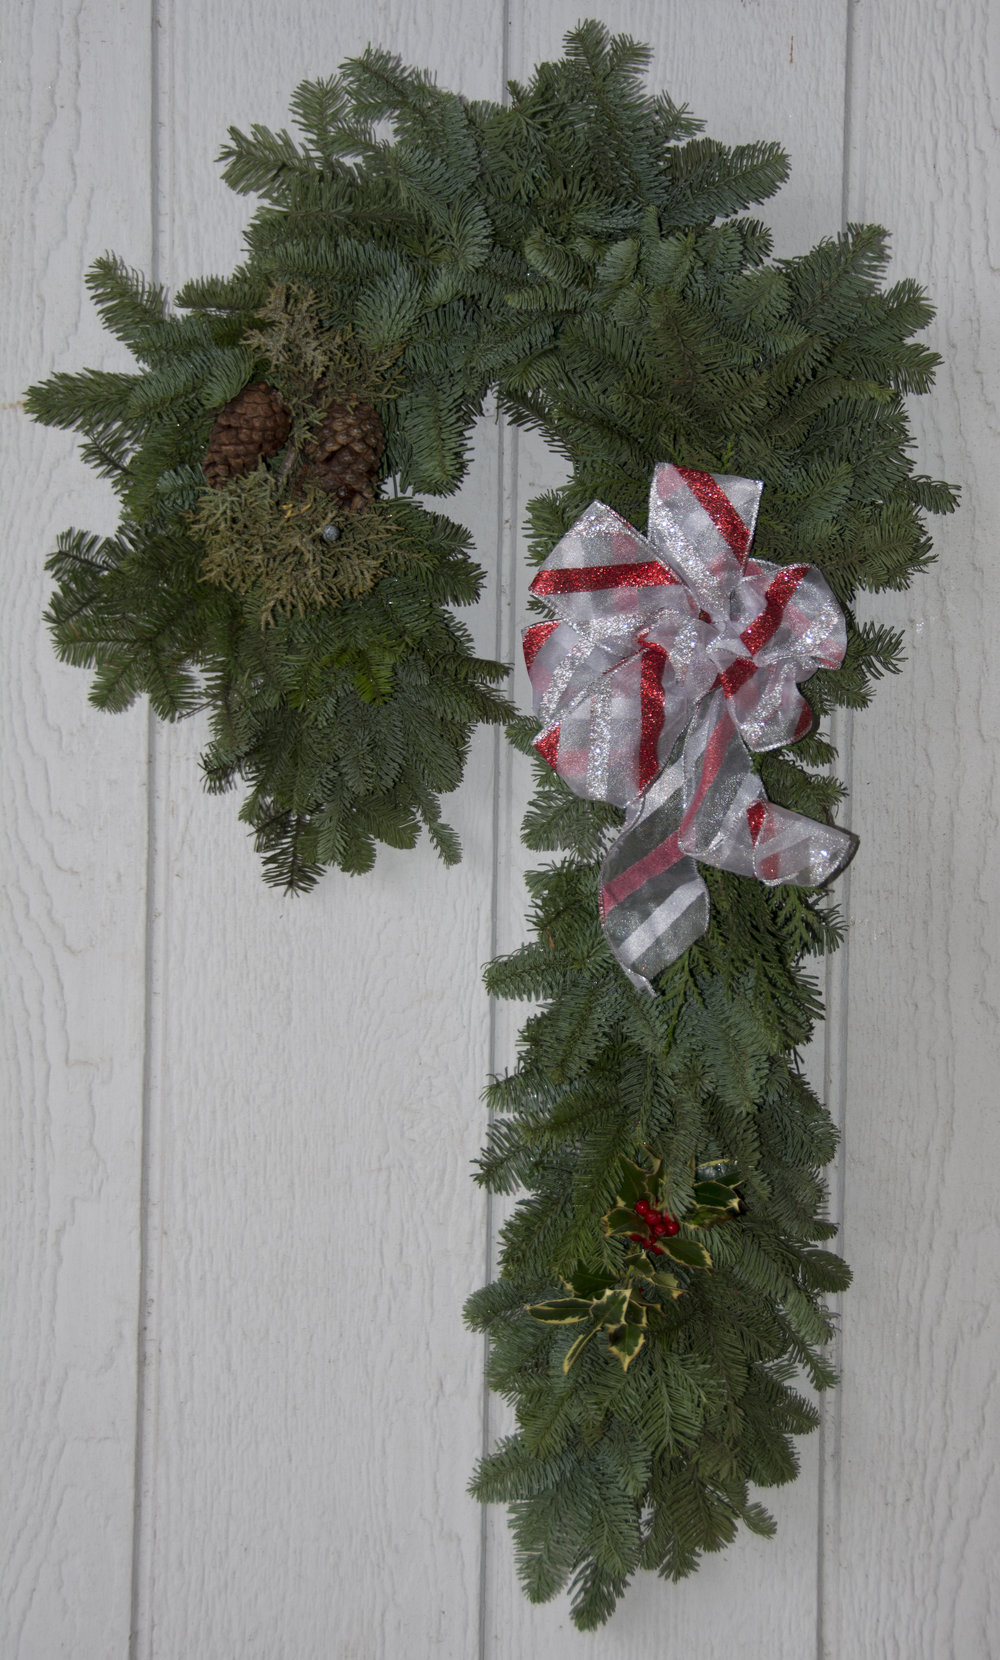 Candy Cane Wreaths  Candy Cane Wreaths $30